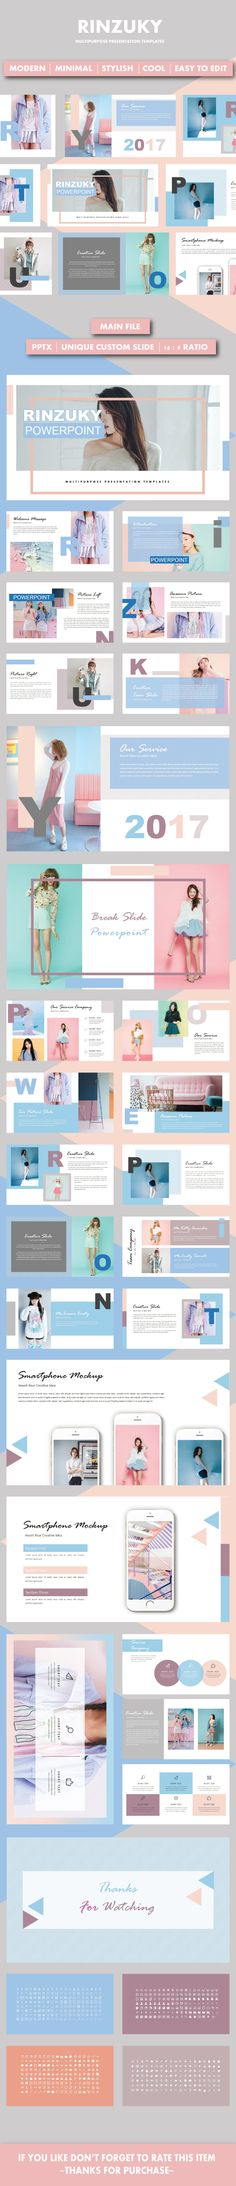 NOTION - Simple Creative PowerPoint Template Creative powerpoint - powerpoint brochure template